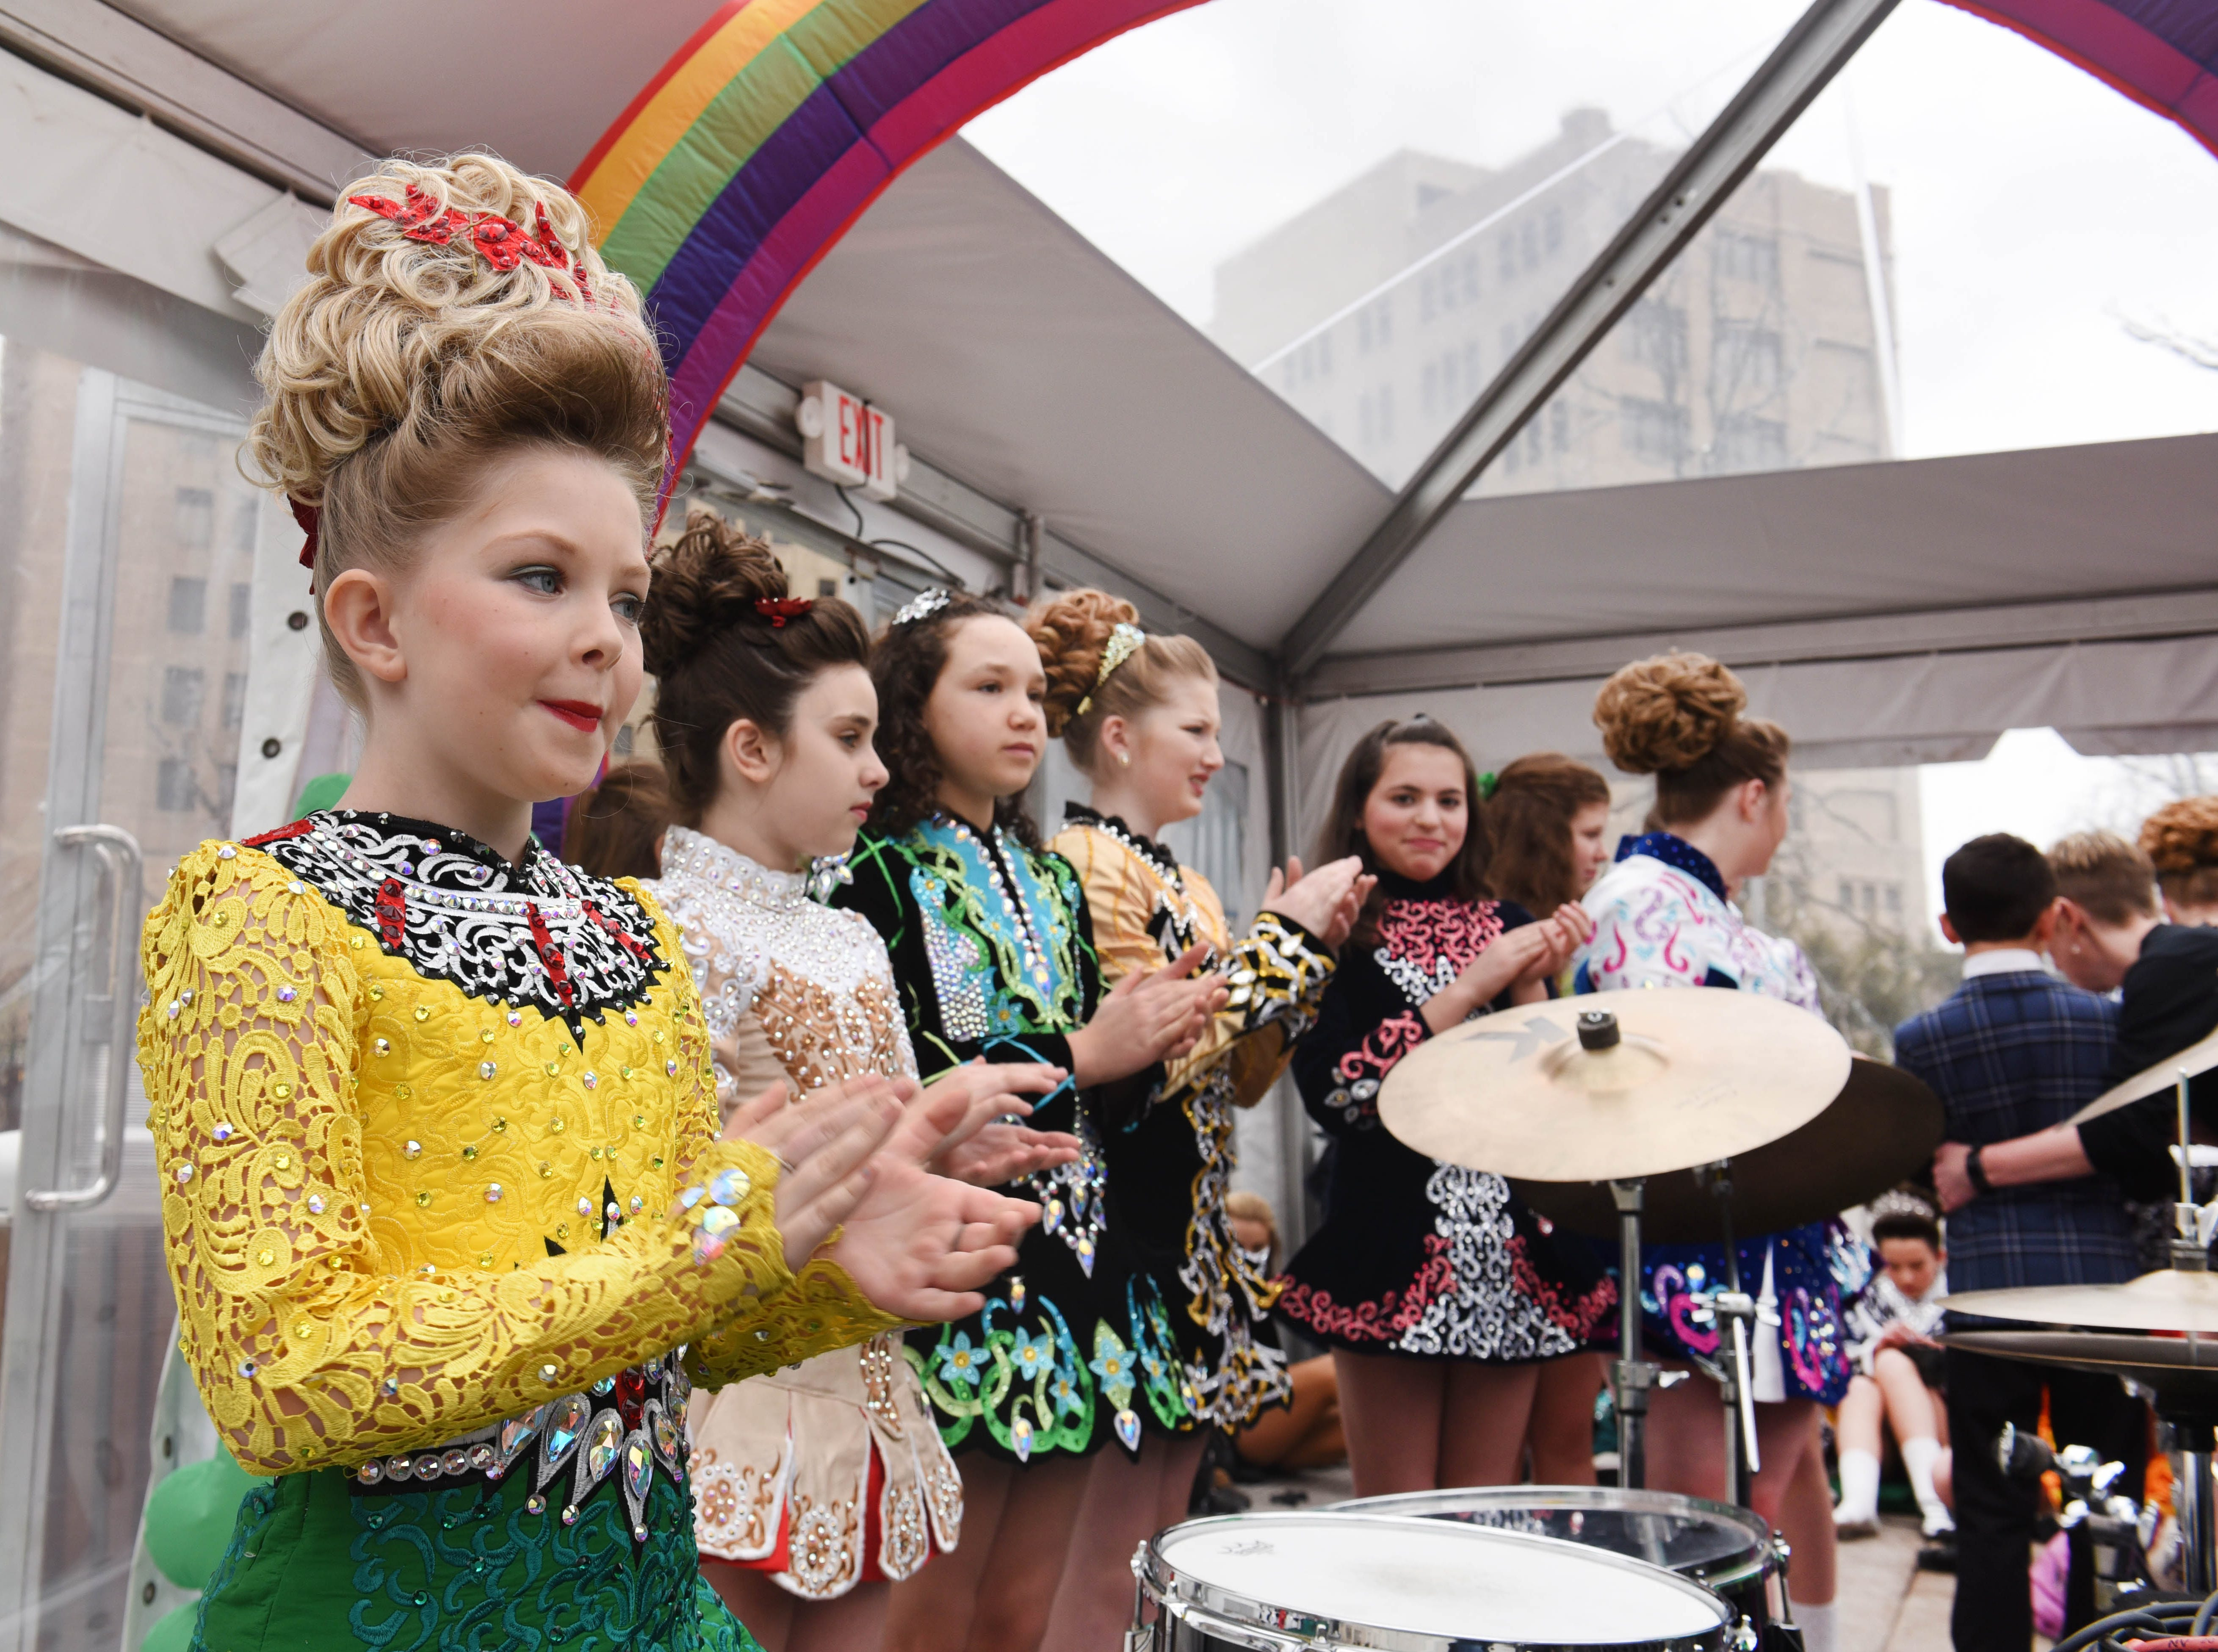 Members of the Tim O'Hare Irish Dance group wore colorful costumes at the St. Patrick's Day Party.